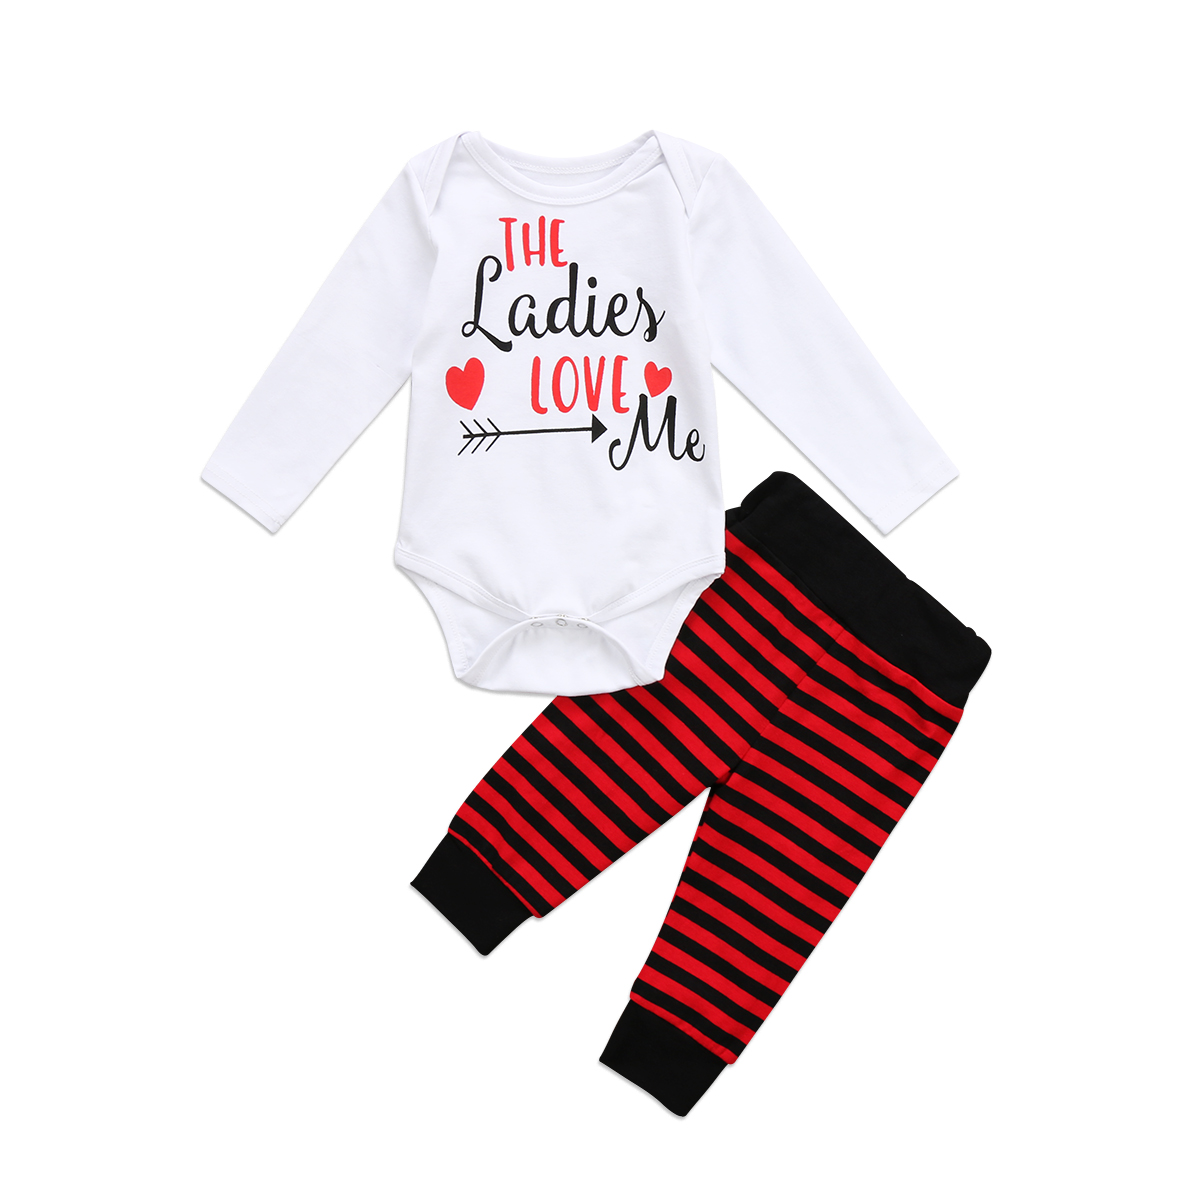 2Pcs Cute Baby Suit Newborn Baby Unisex Letter Rompers Infant Baby Boys Girls Striped Pant Autumn Baby Jumper Outfits Clothes